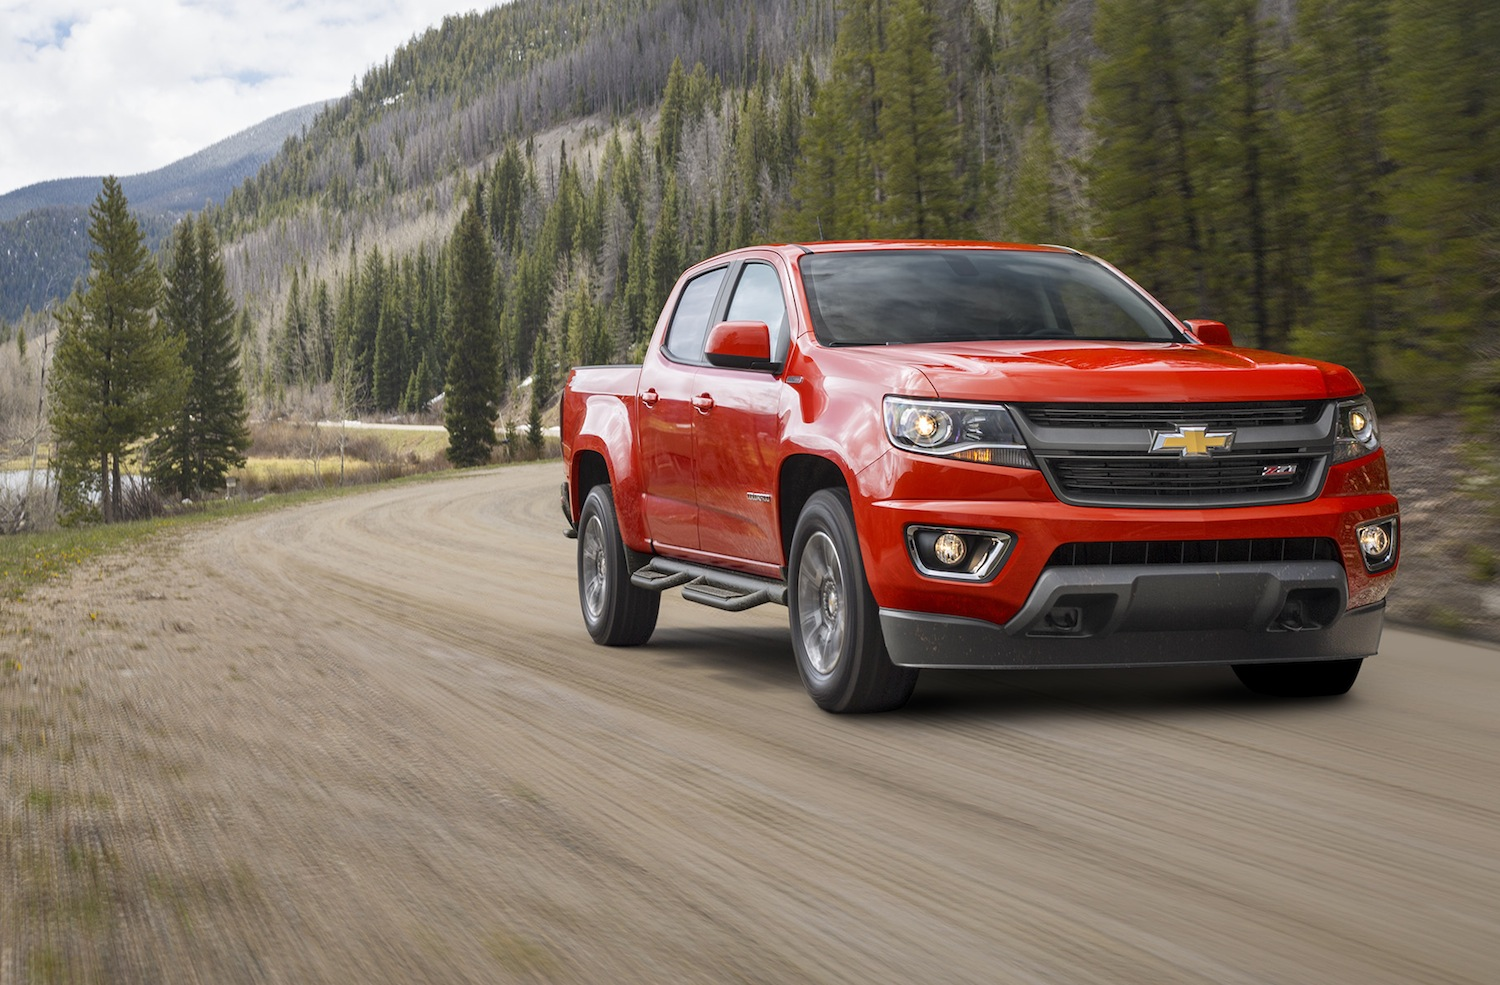 2016 chevrolet colorado duramax diesel revealed chevytv. Black Bedroom Furniture Sets. Home Design Ideas